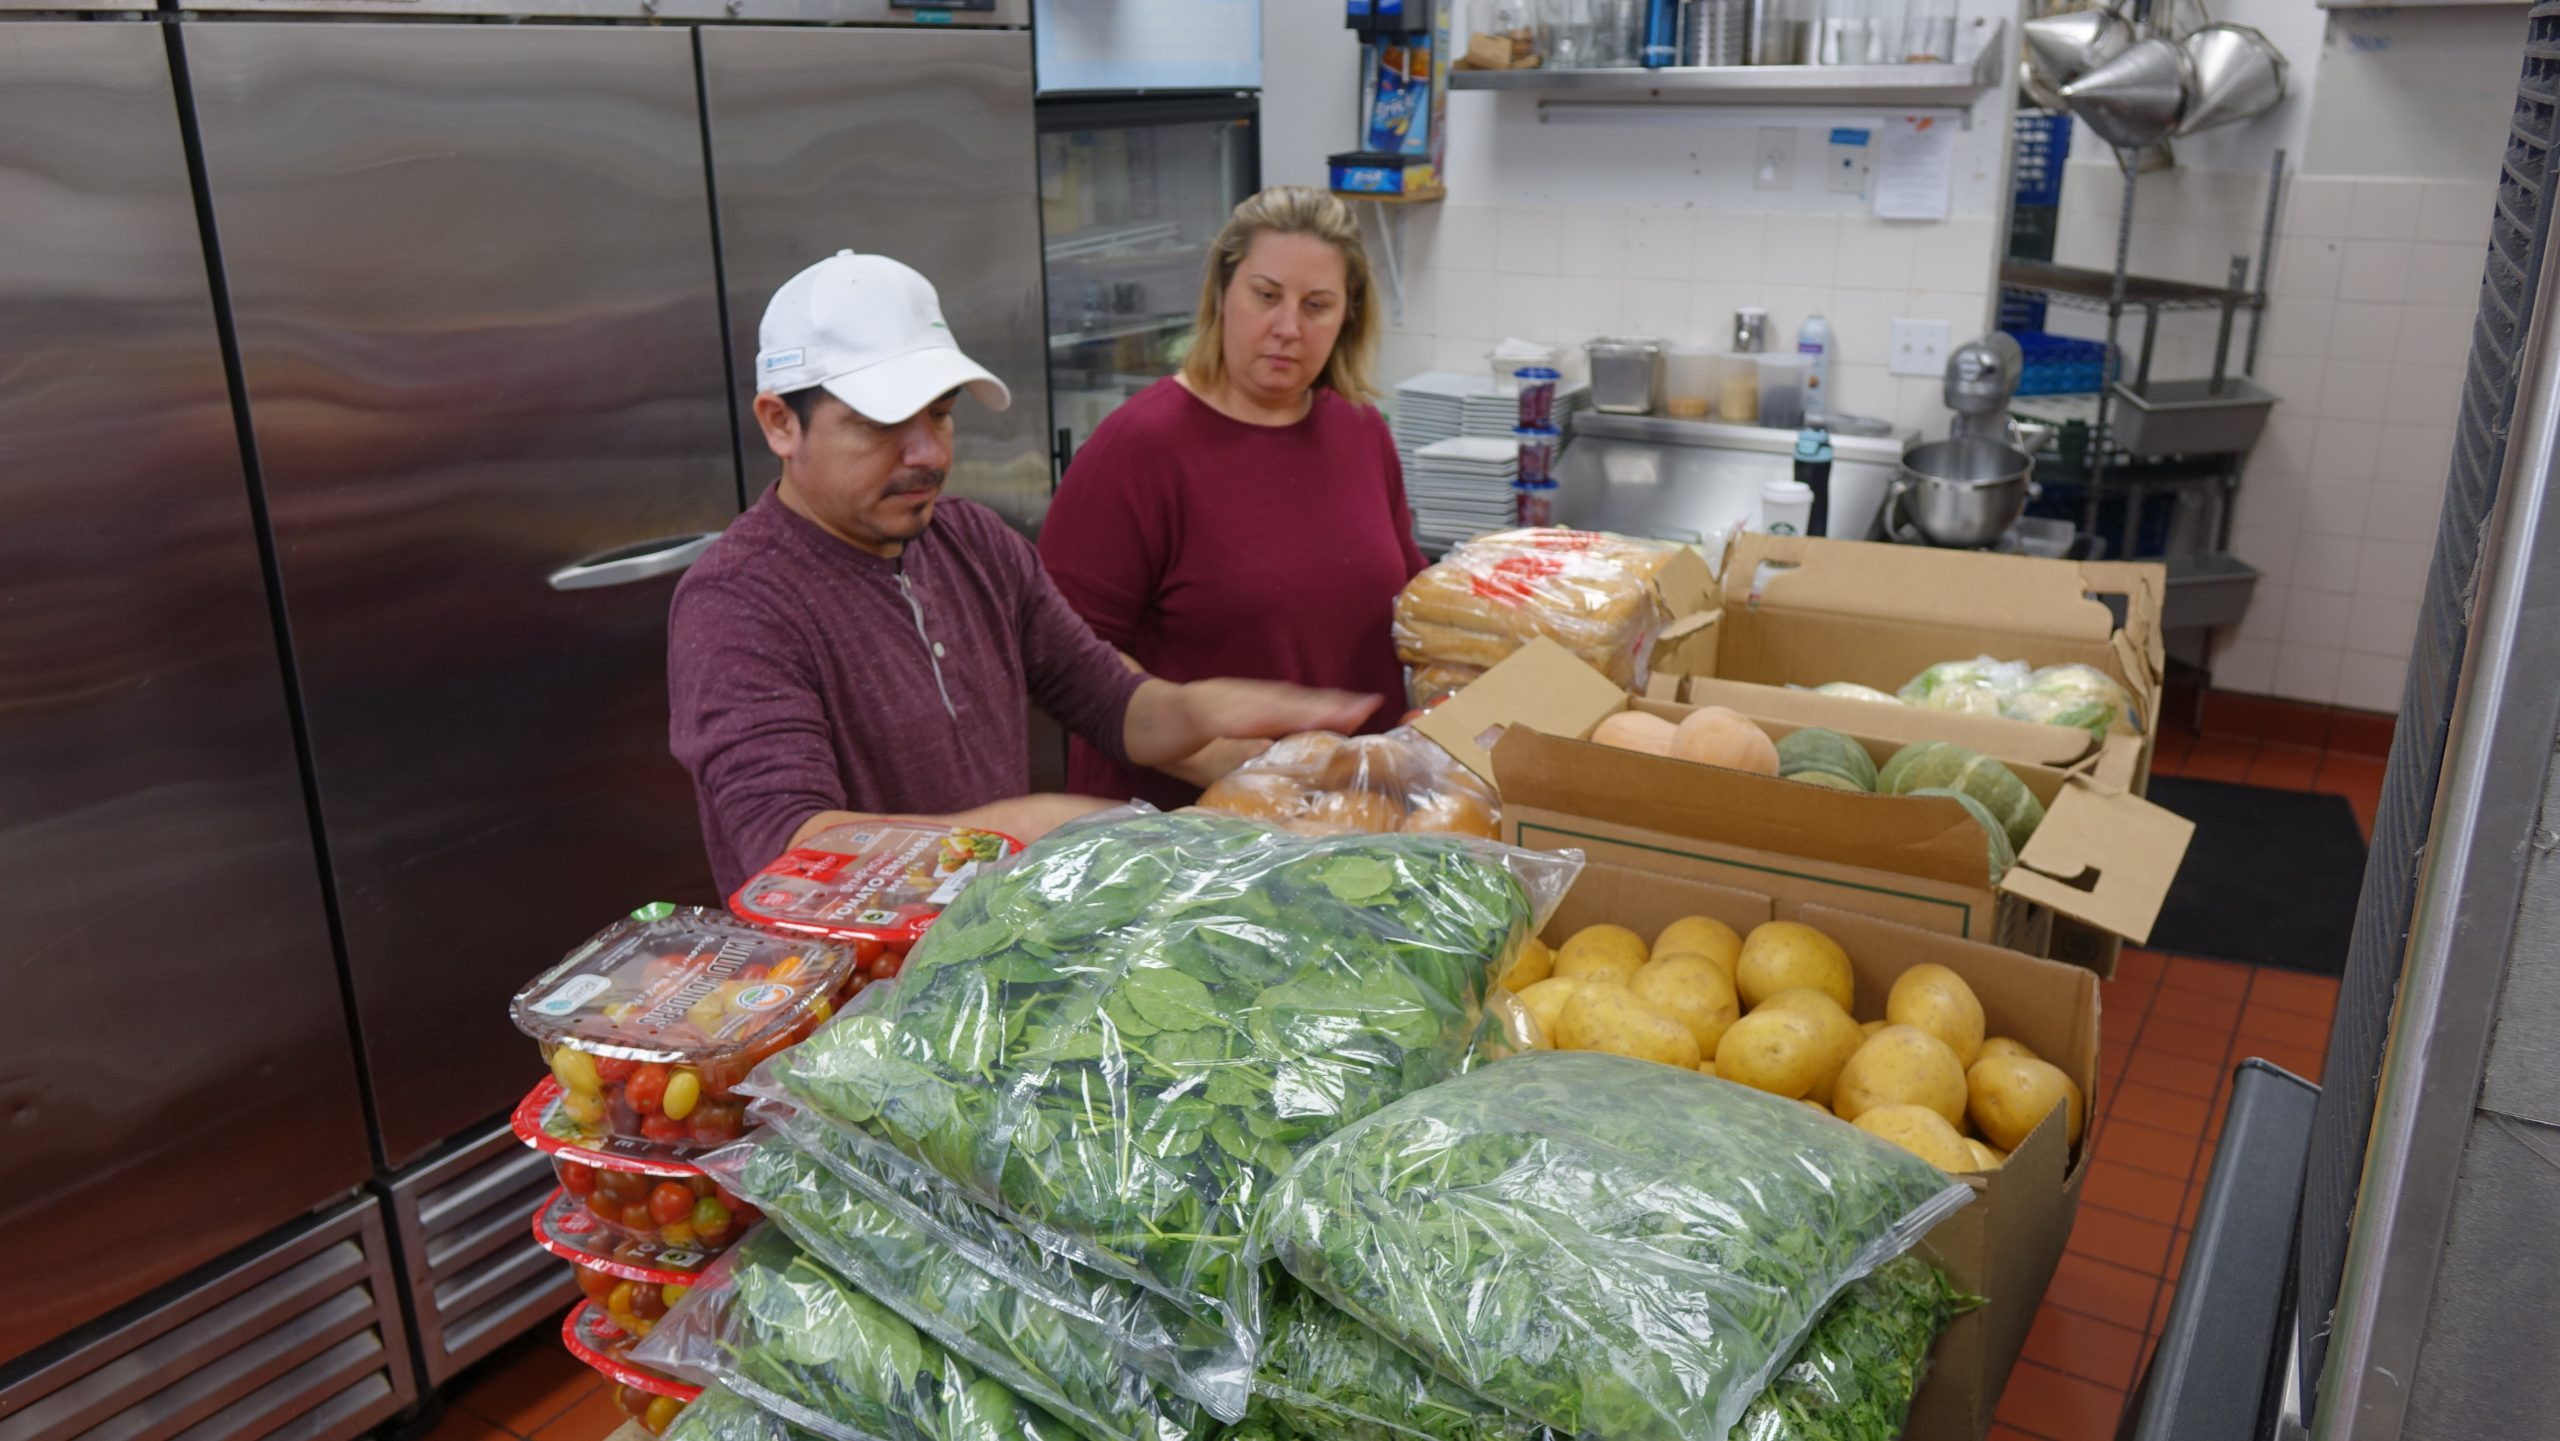 Laguna Chef Launches Food Co-Op to Serve Frustrated Shoppers - Laguna Beach Local News